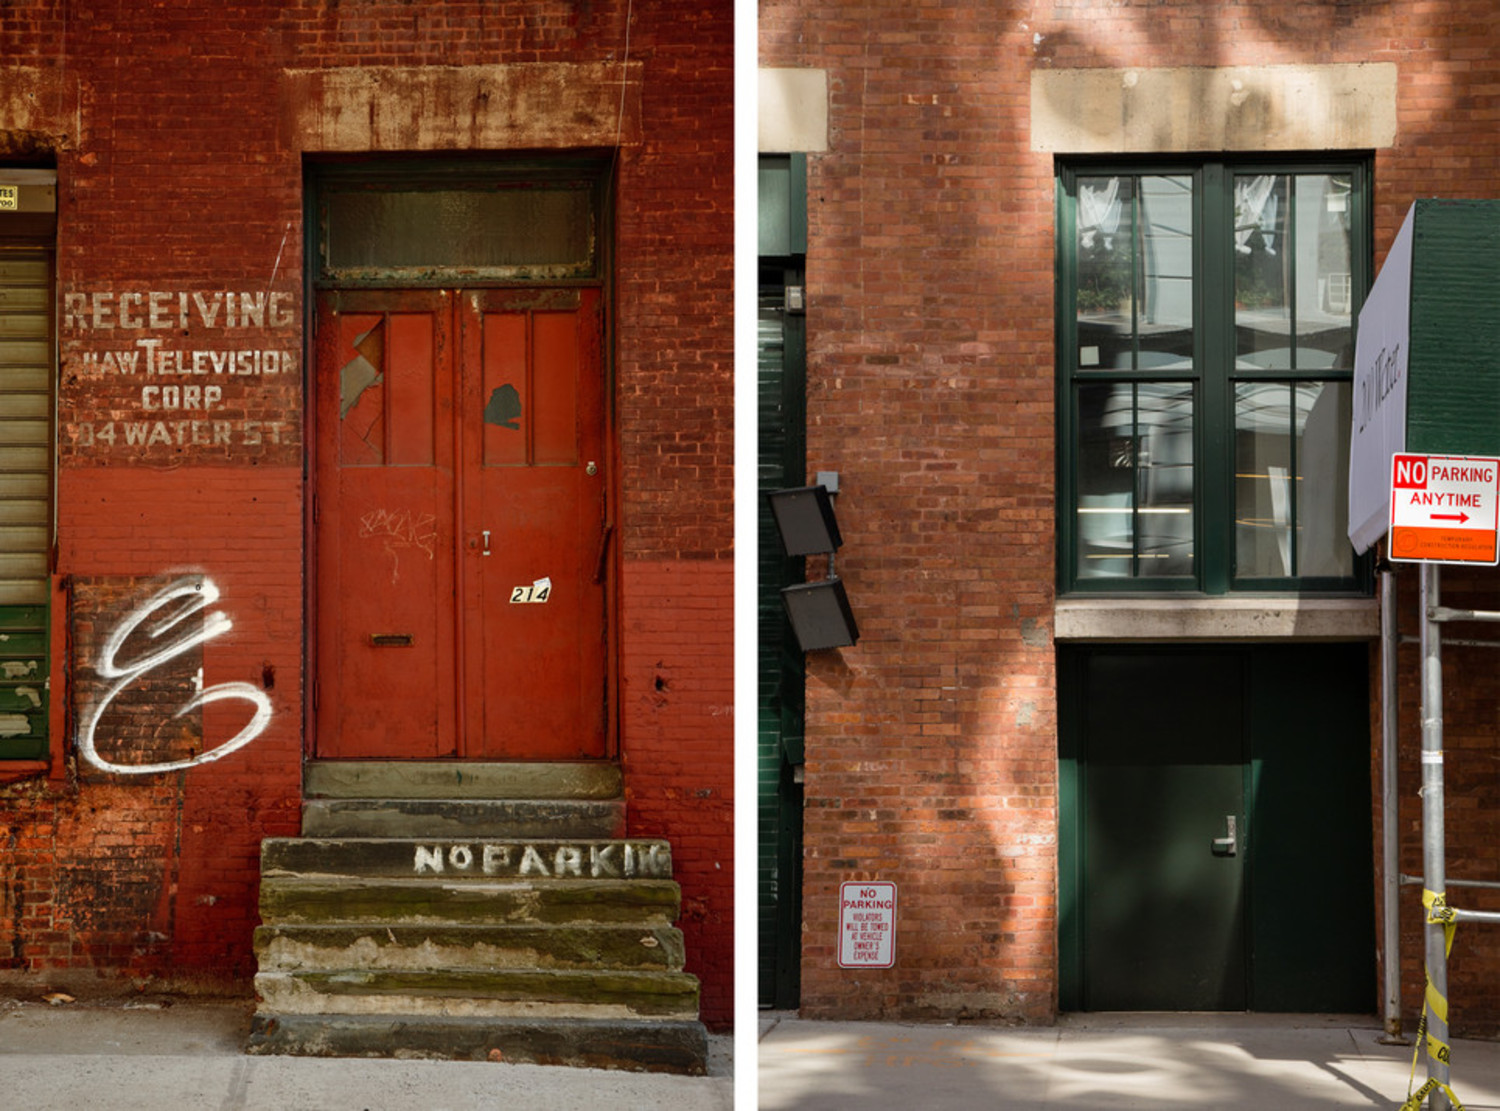 214 WATER STREET, 2009 and 2015